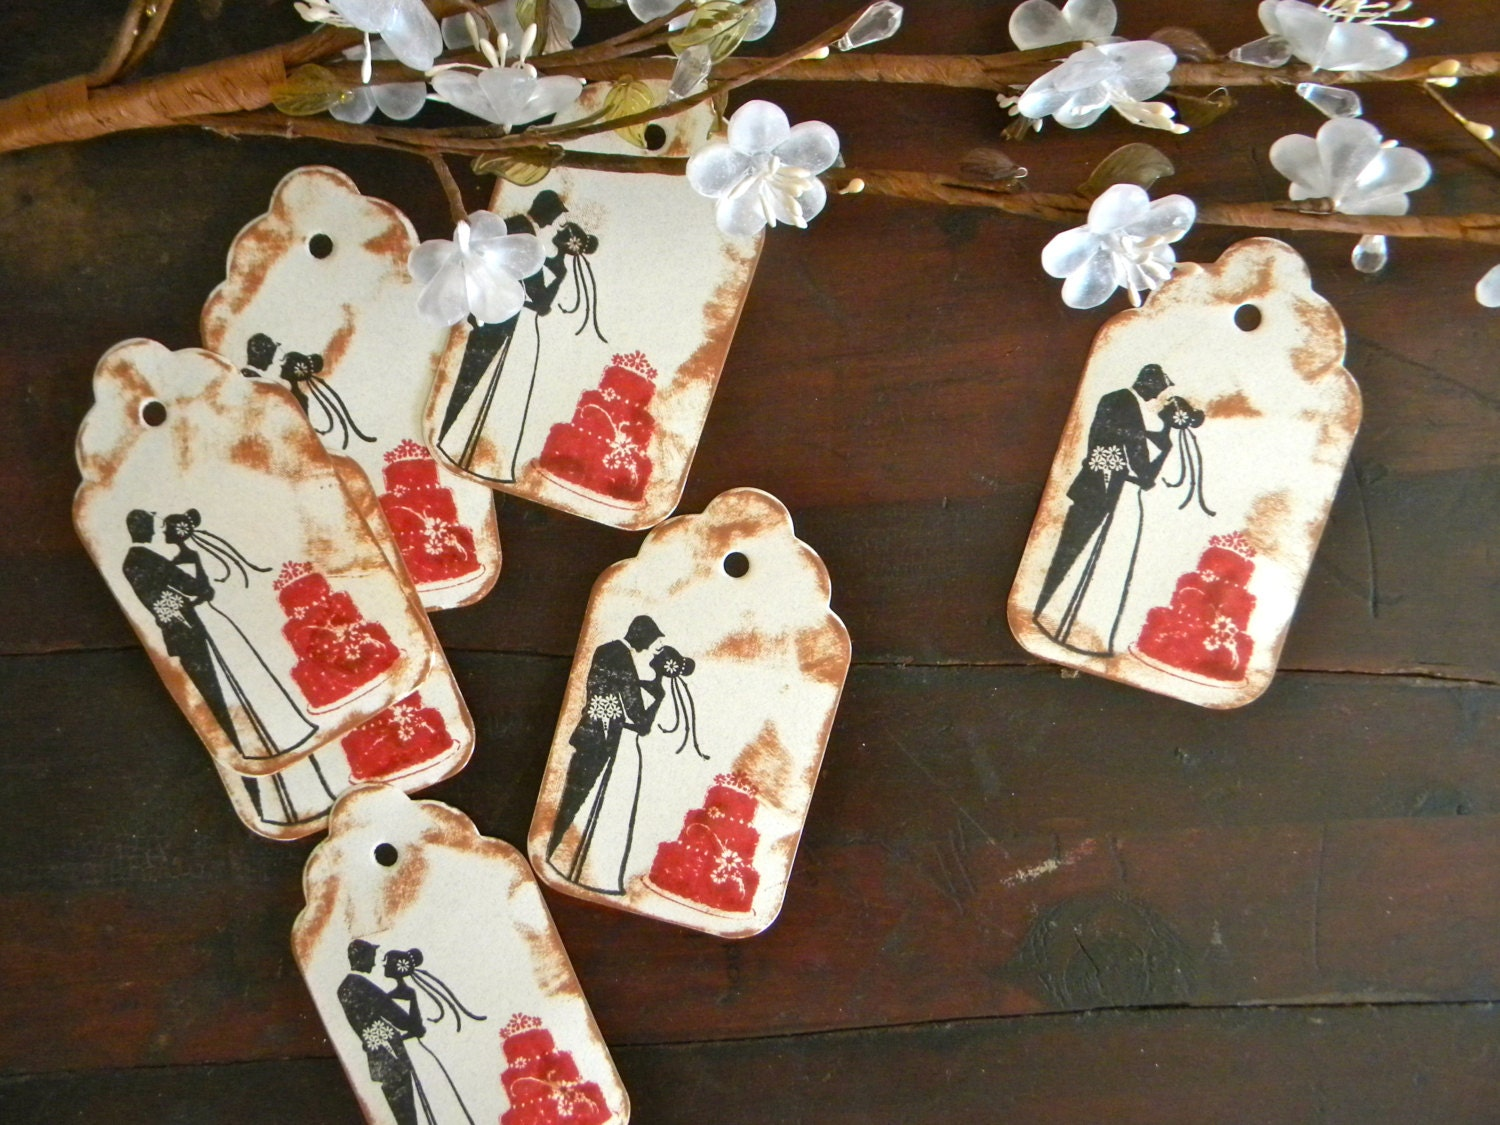 Wedding Gift Groom Bride : Wedding Gift Tags Bride and Groom Tags Red Wedding Theme